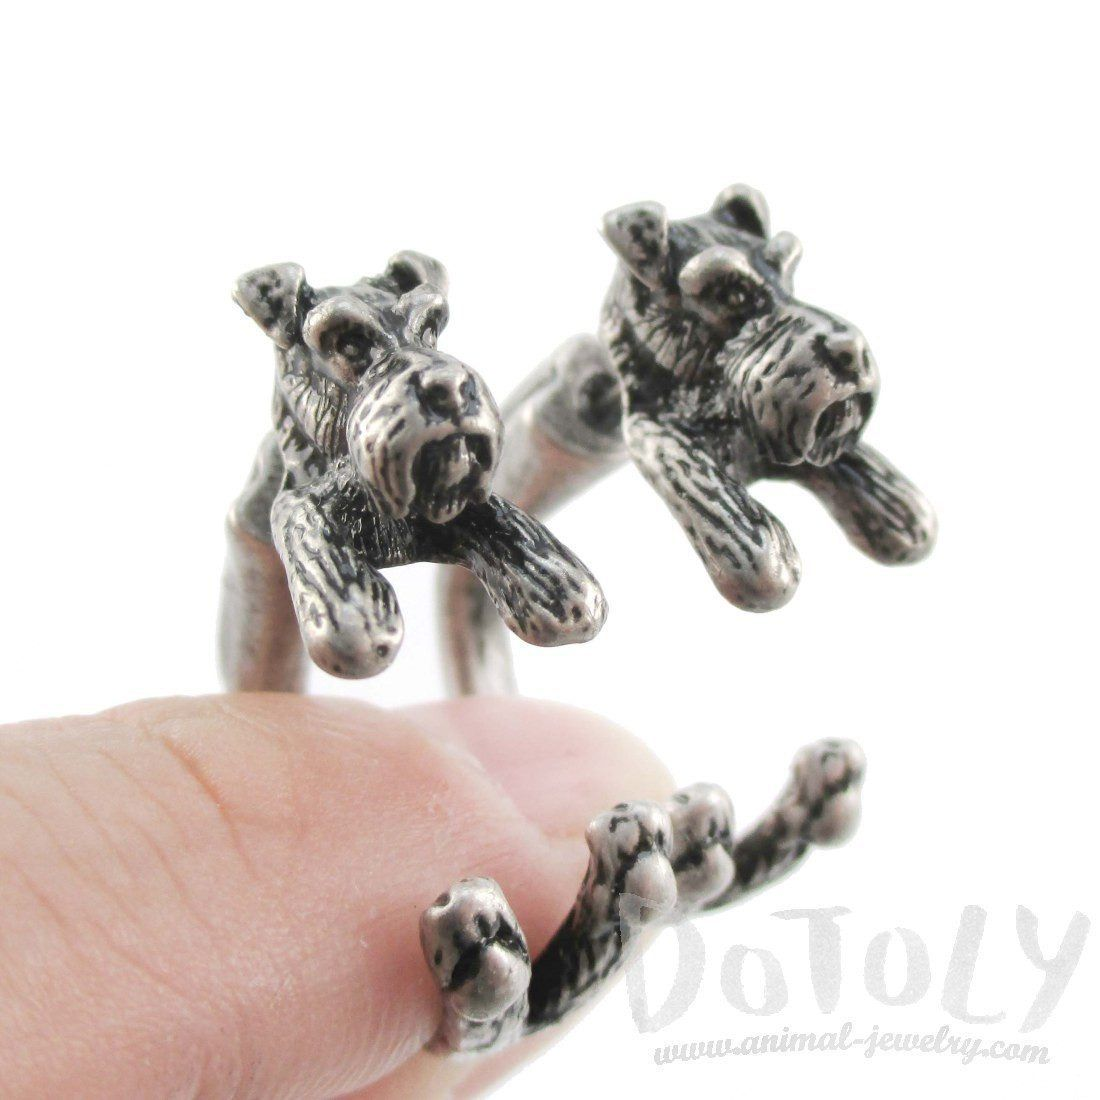 Dog Inspired Animal Jewelry and Products – DOTOLY